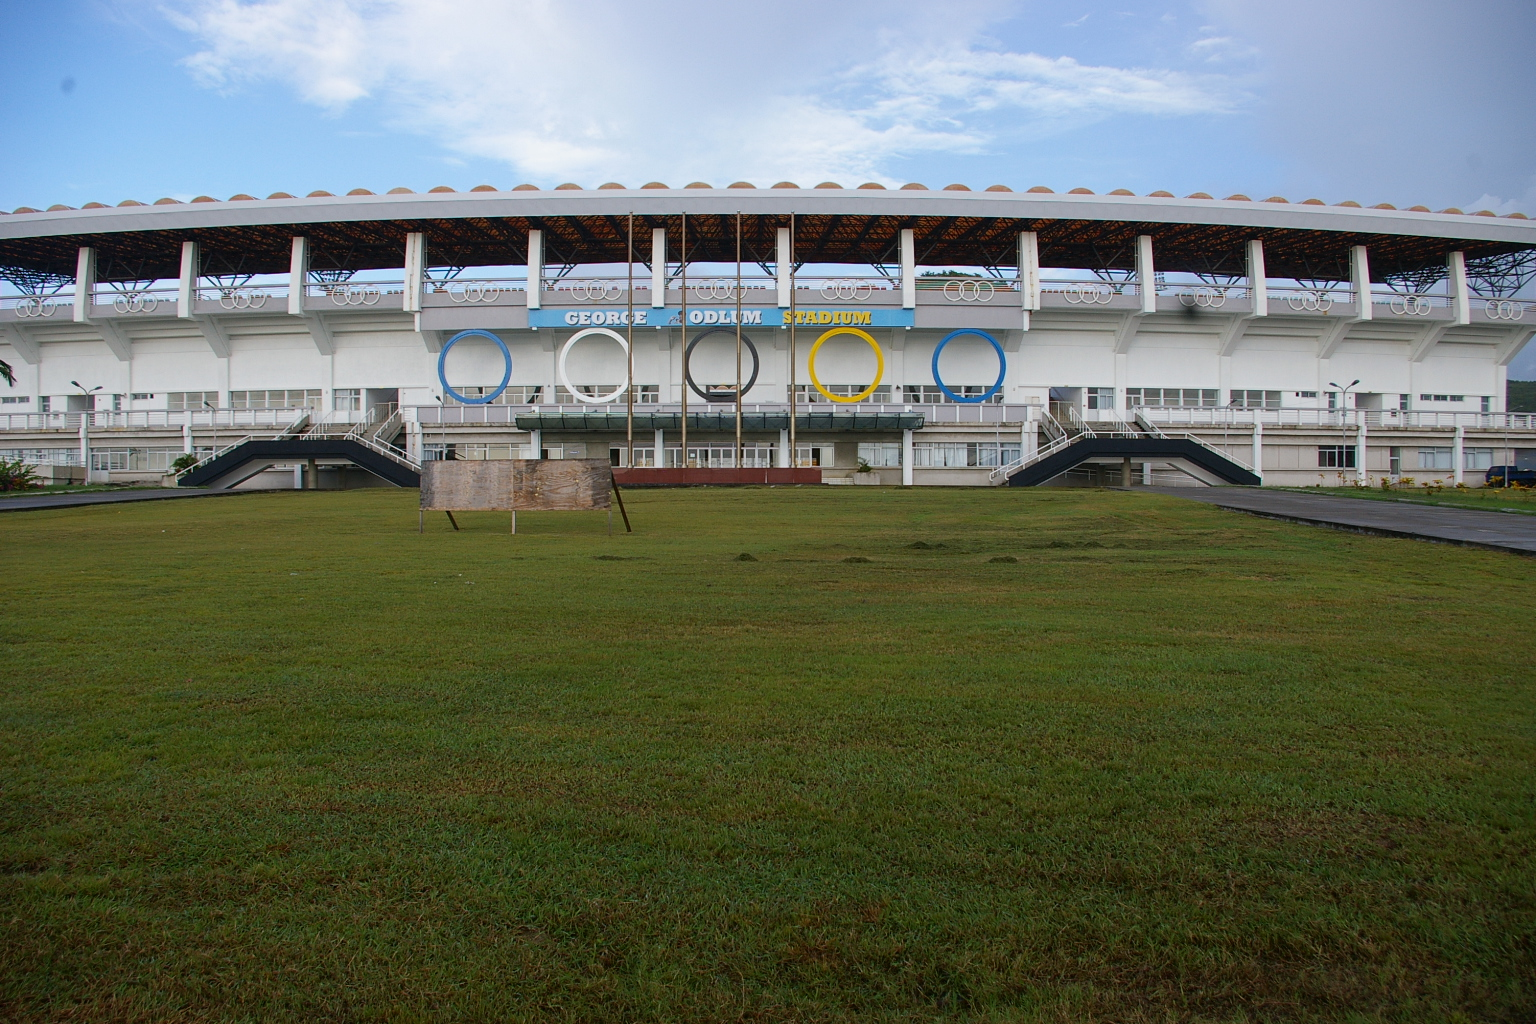 St. Jude Hospital in the Vieux Fort stadium